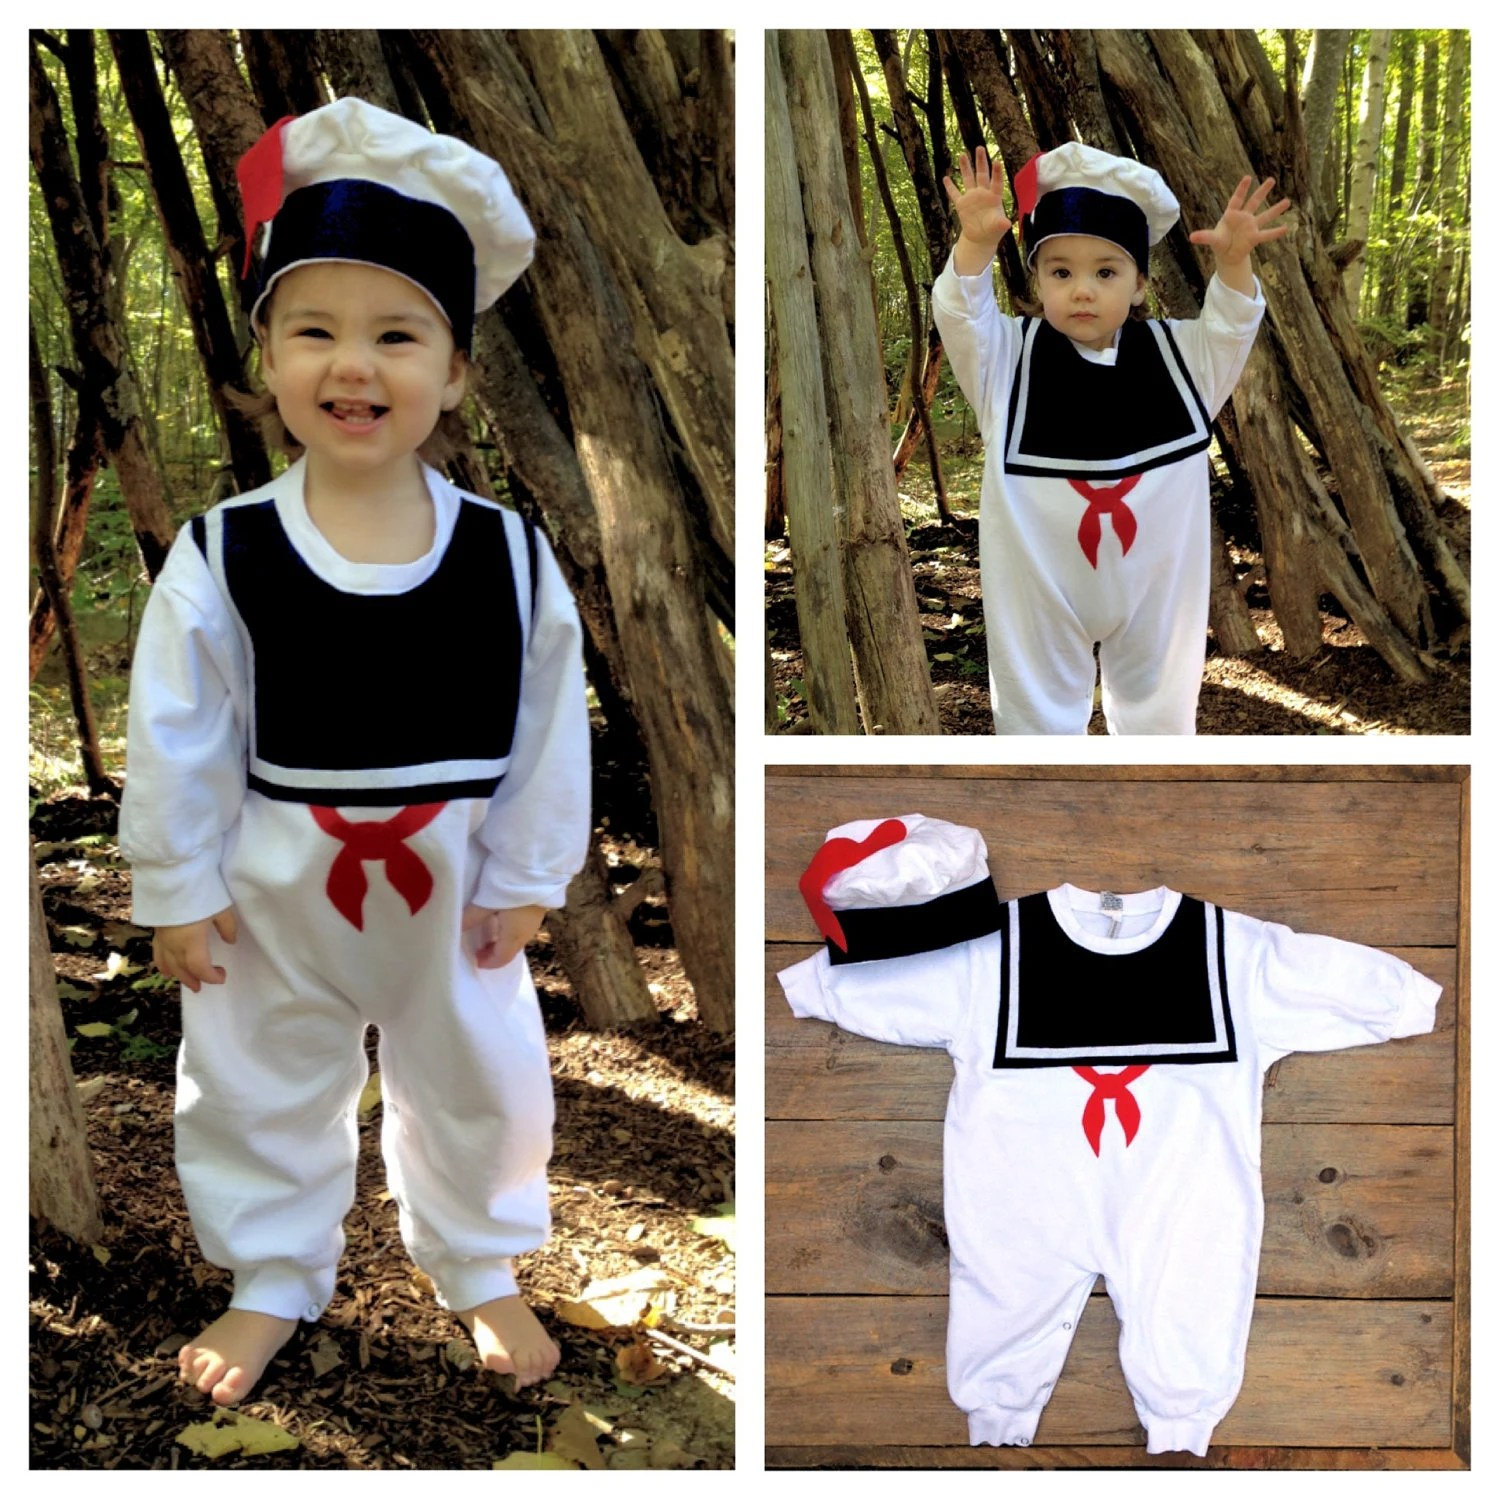 Marshmallow Man Childrens Costume - Warm Version - TheWishingElephant  sc 1 st  A Sparkly Life for Me & Handmade Kids Costumes from Etsy - A Sparkly Life for Me